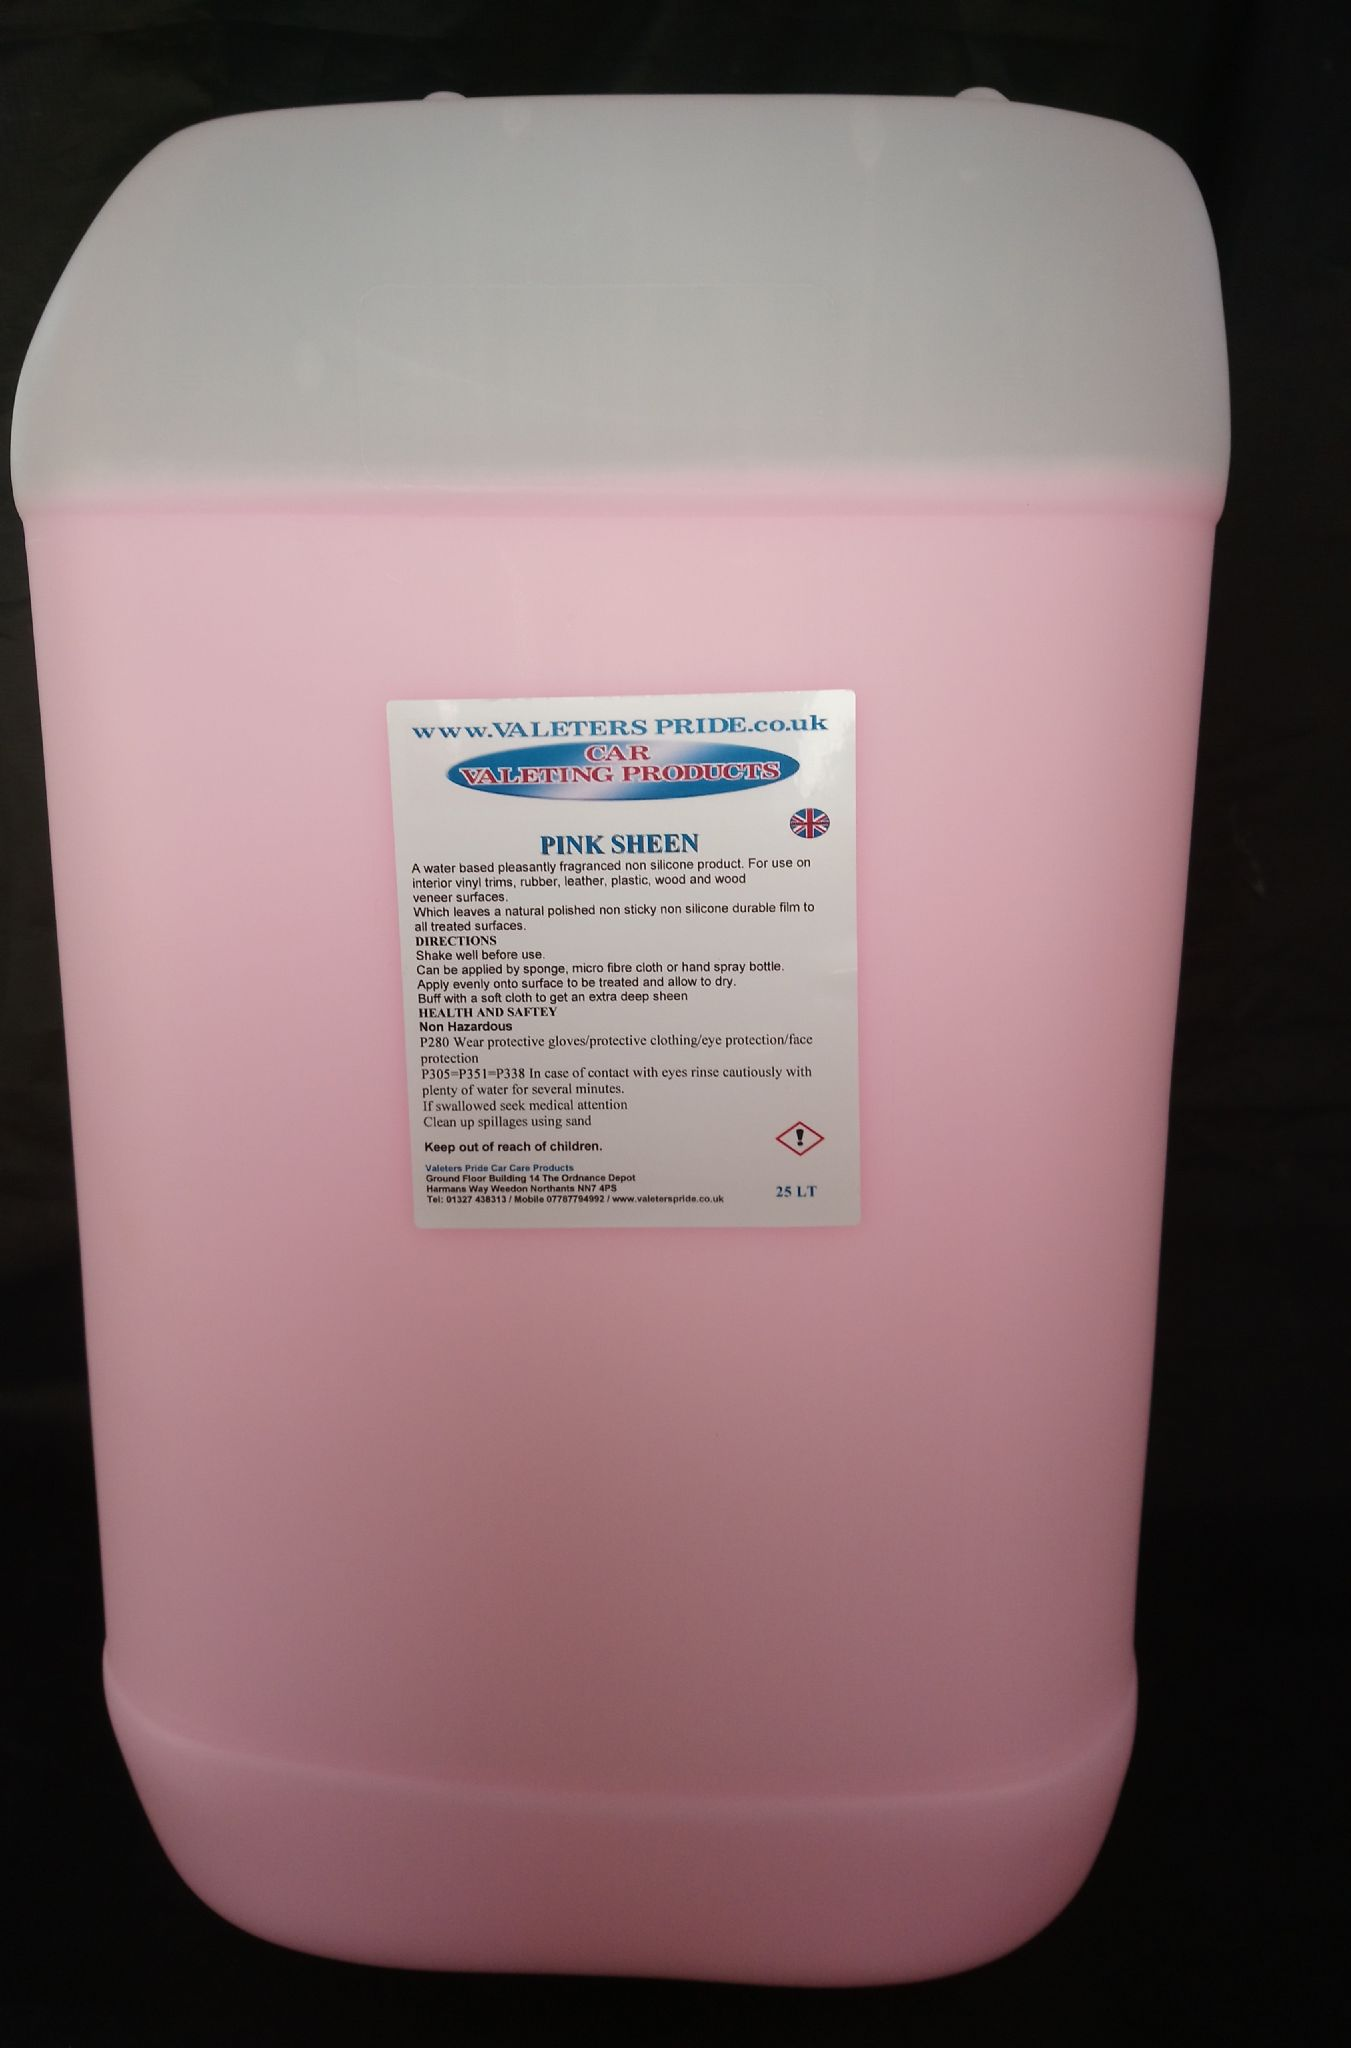 25L Valeters Pride Pink Sheen Non Silicone Water Based Vinyl/ Trim Dressing  Valeting Product